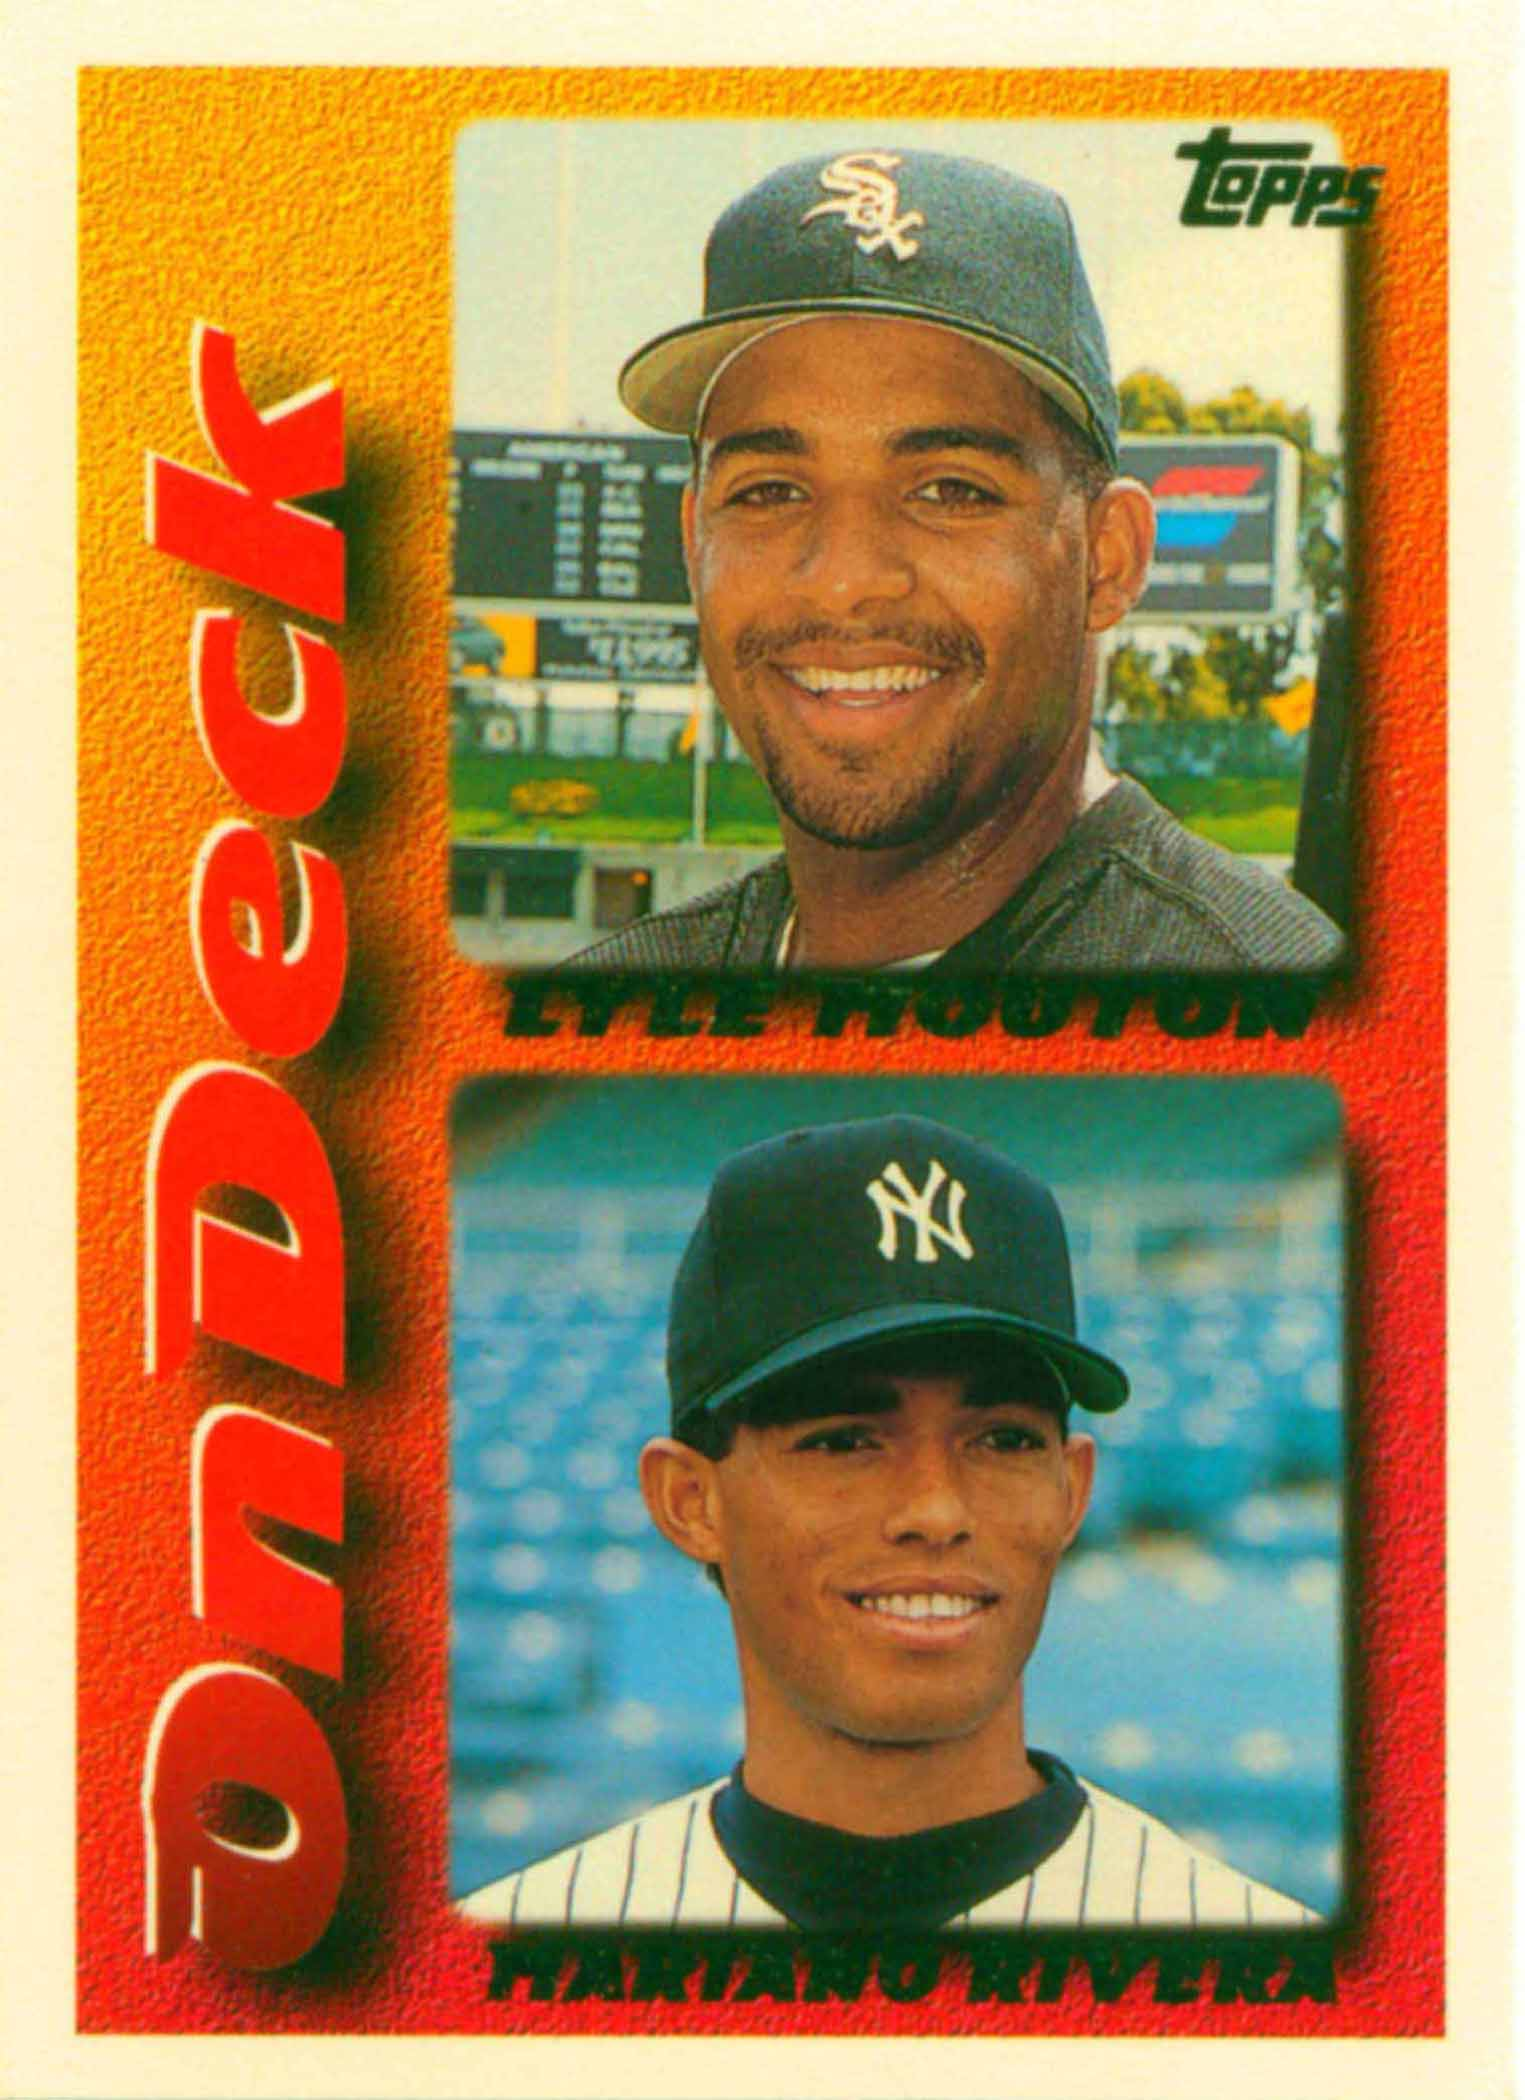 1995 Topps Traded